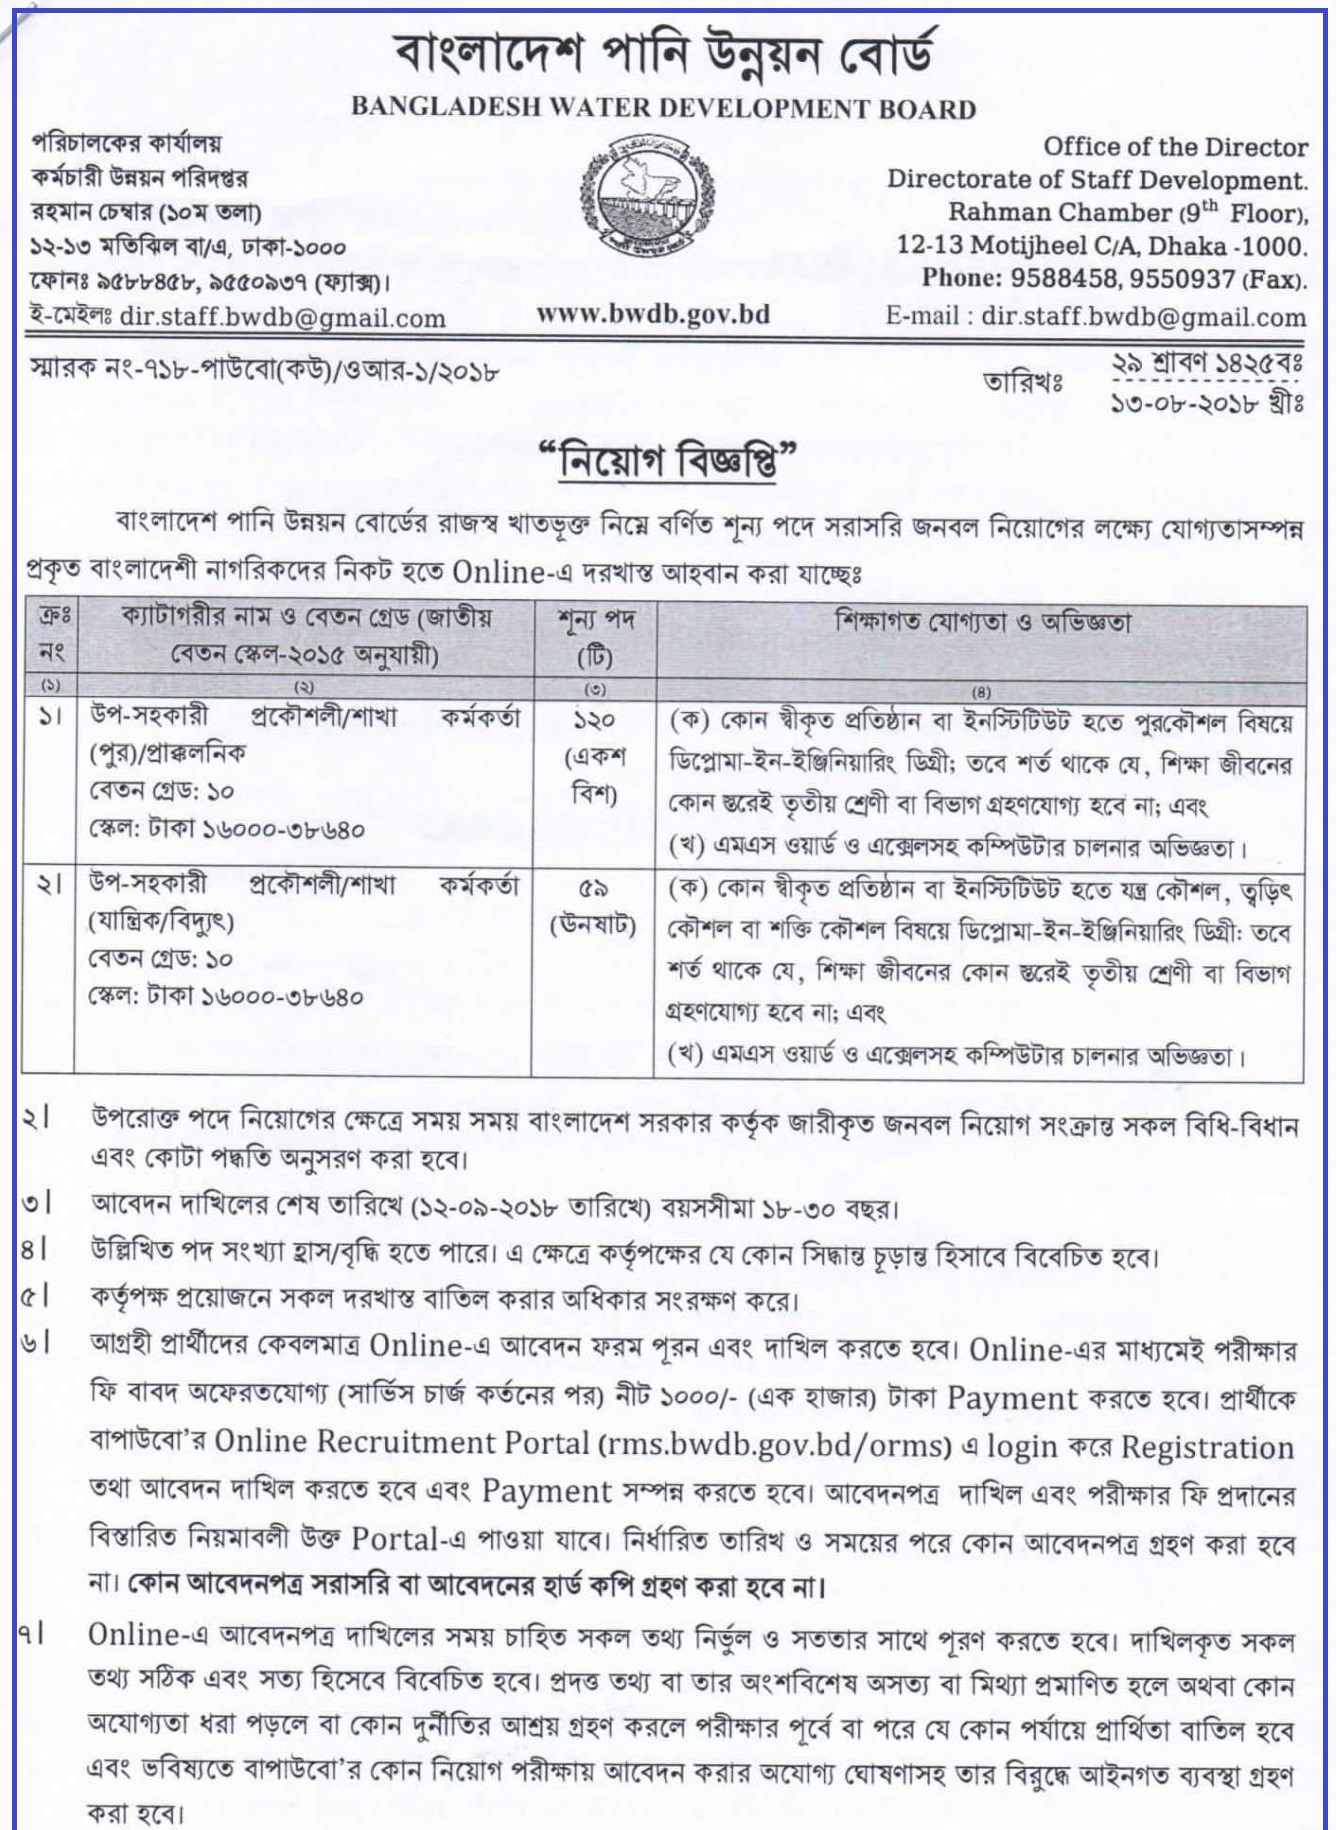 BWDB Job Circular Apply Process